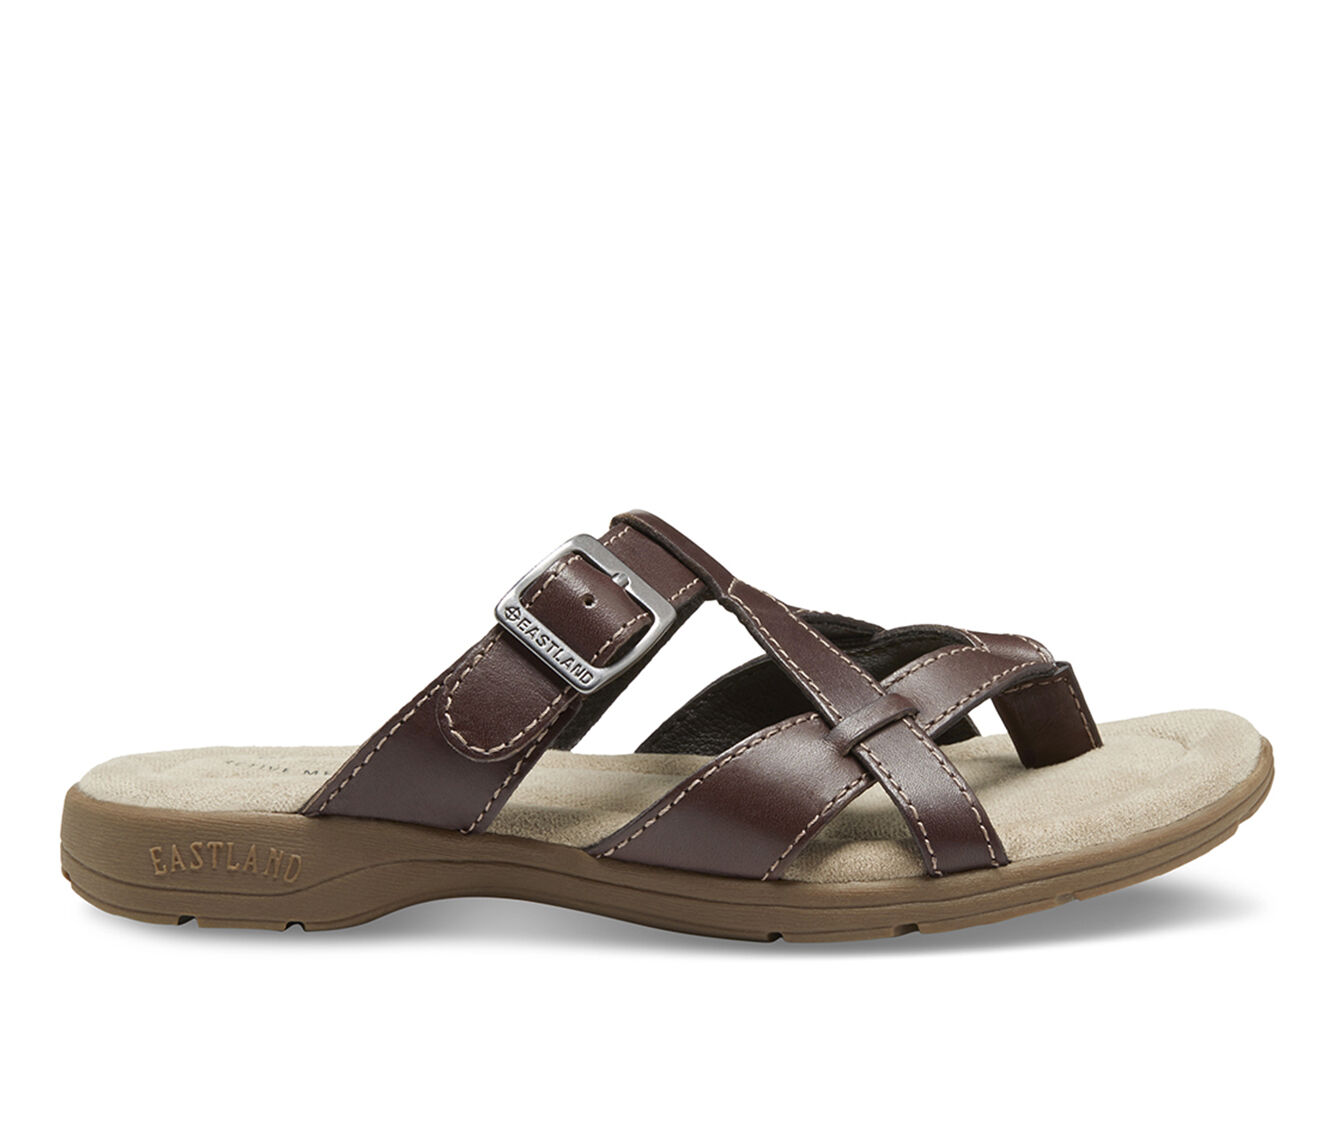 cheapest new arrivals Women's Eastland Pearl Sandals Brown